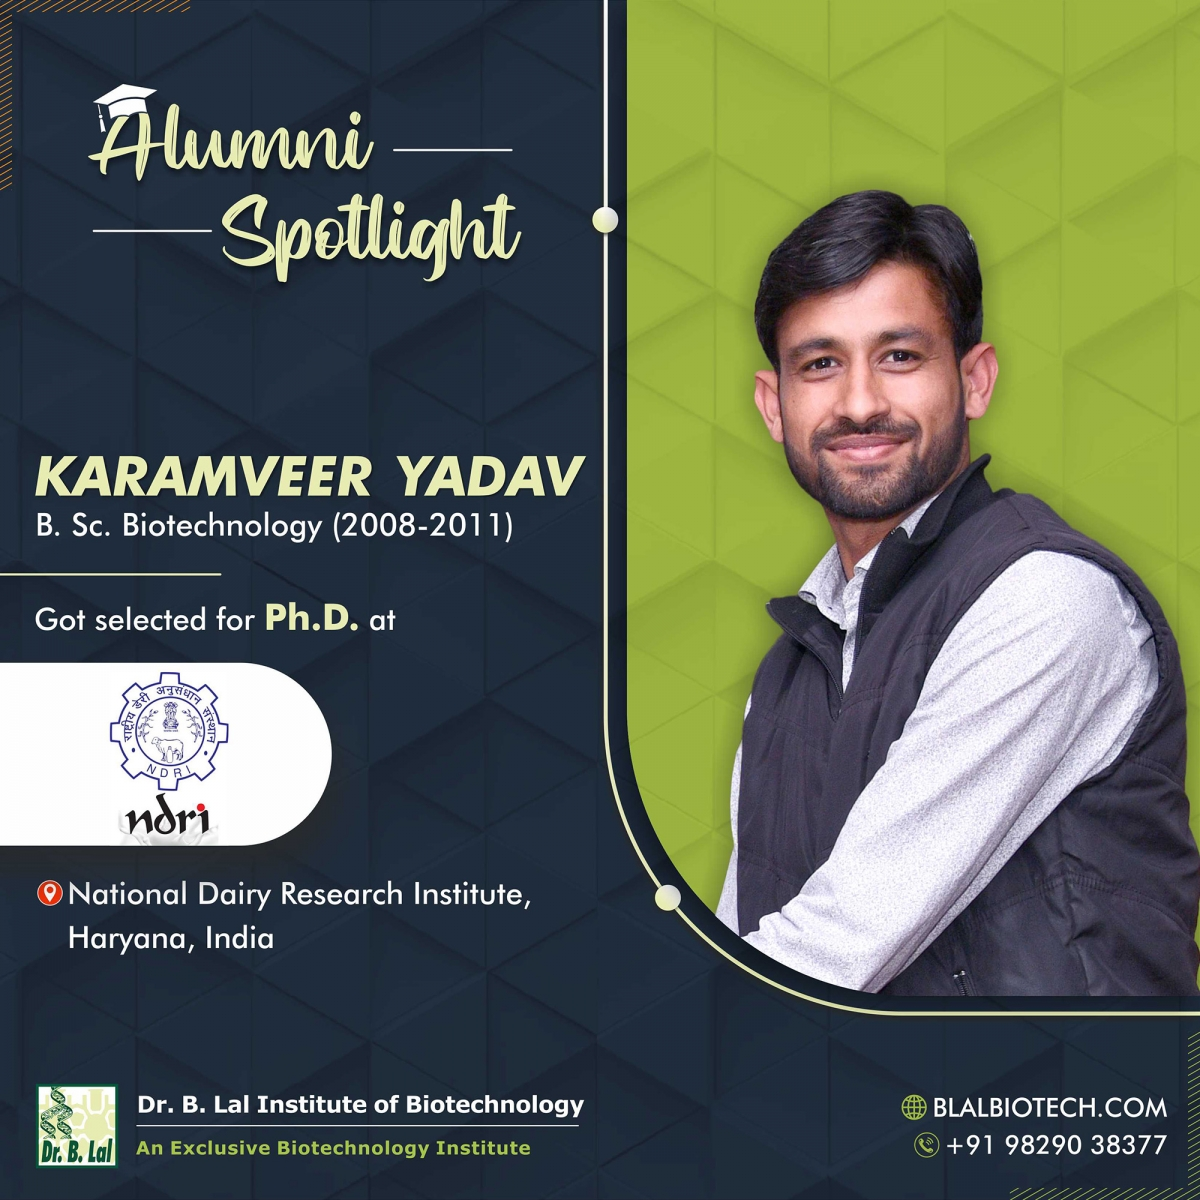 Mr. Karamveer Yadav | Selected for Ph.D. at National Dairy Research Institute, Haryana, India